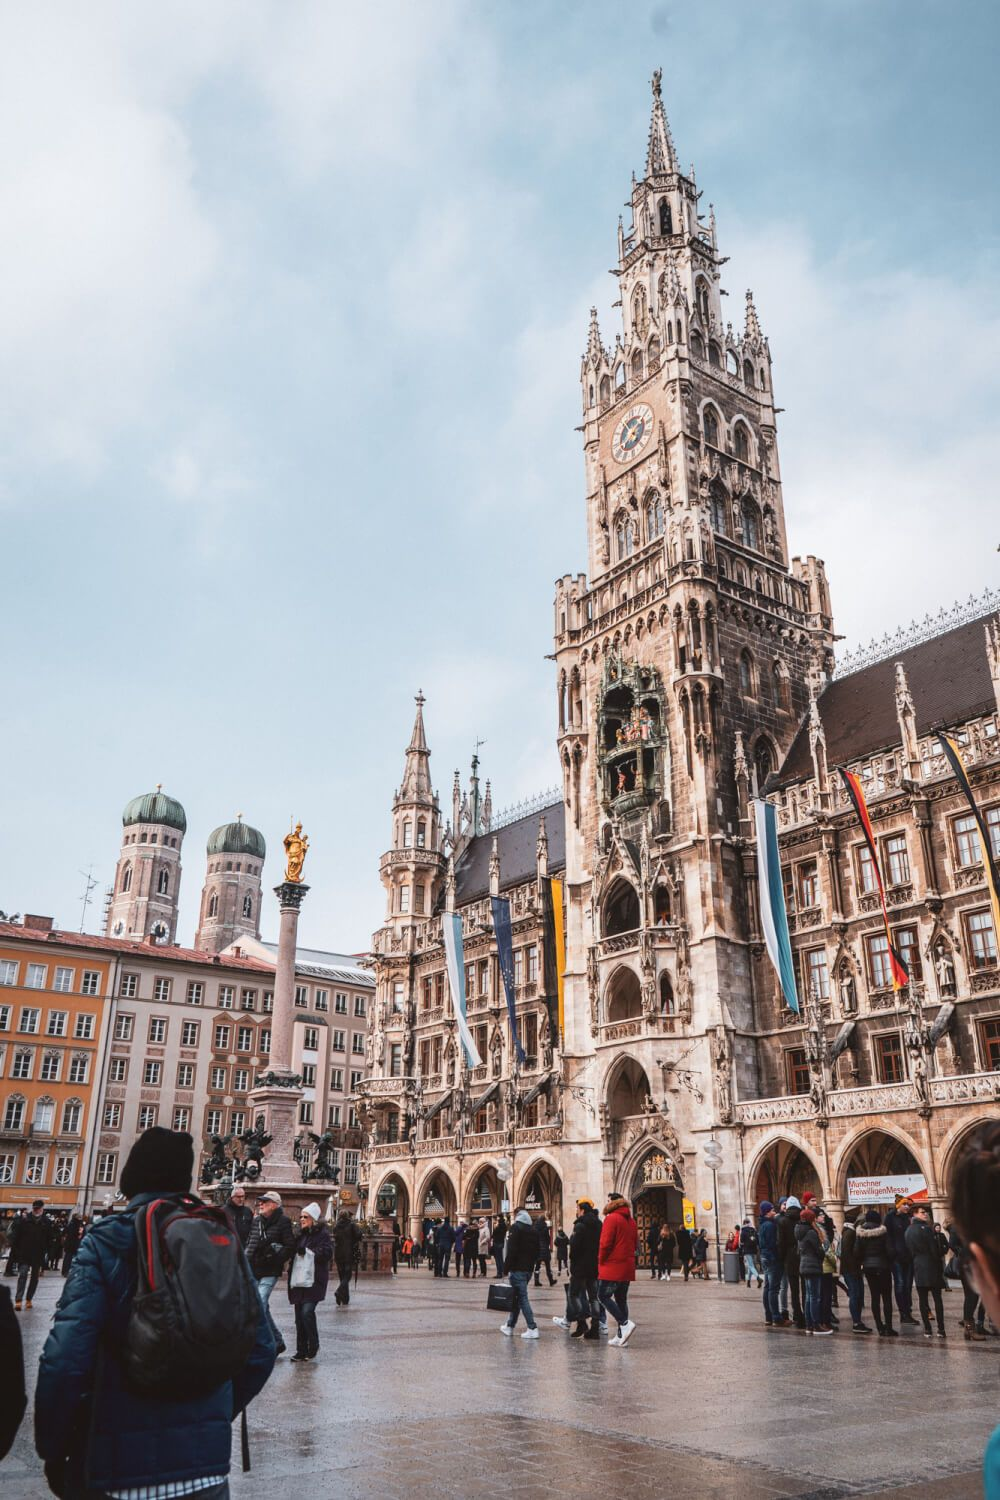 , How to Spend 24 Epic Hours in Munich: The Ultimate Itinerary!, My Travels Blog 2020, My Travels Blog 2020